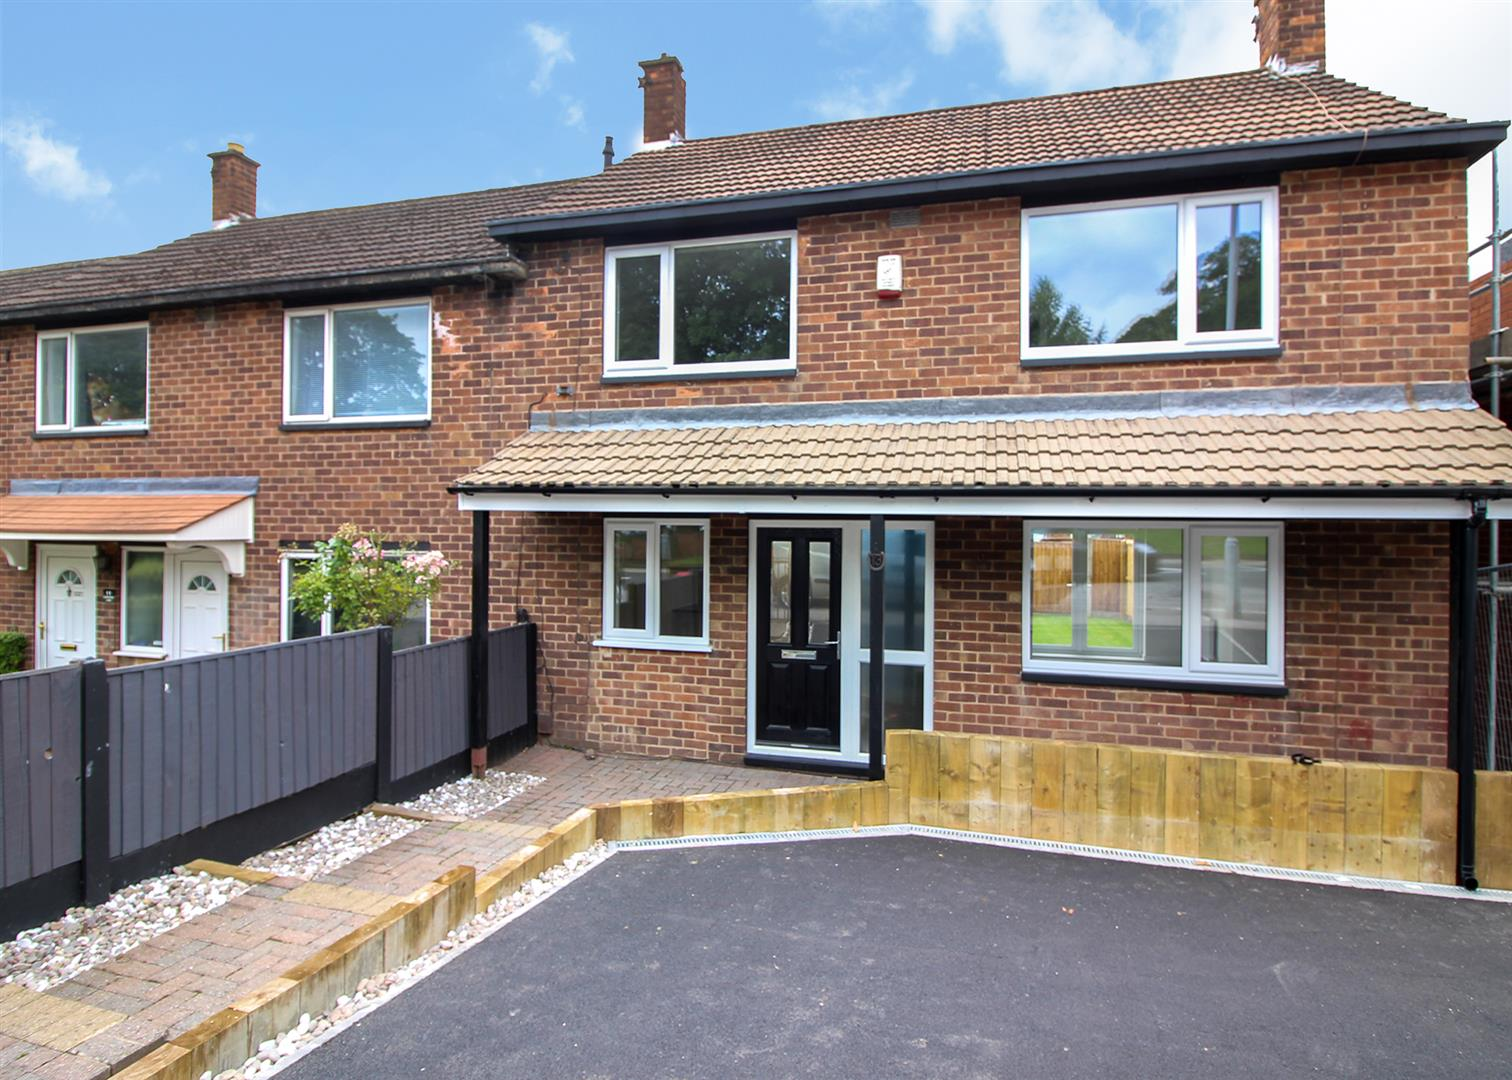 3 Bedrooms End Of Terrace House for sale in Coventry Lane, Bramcote